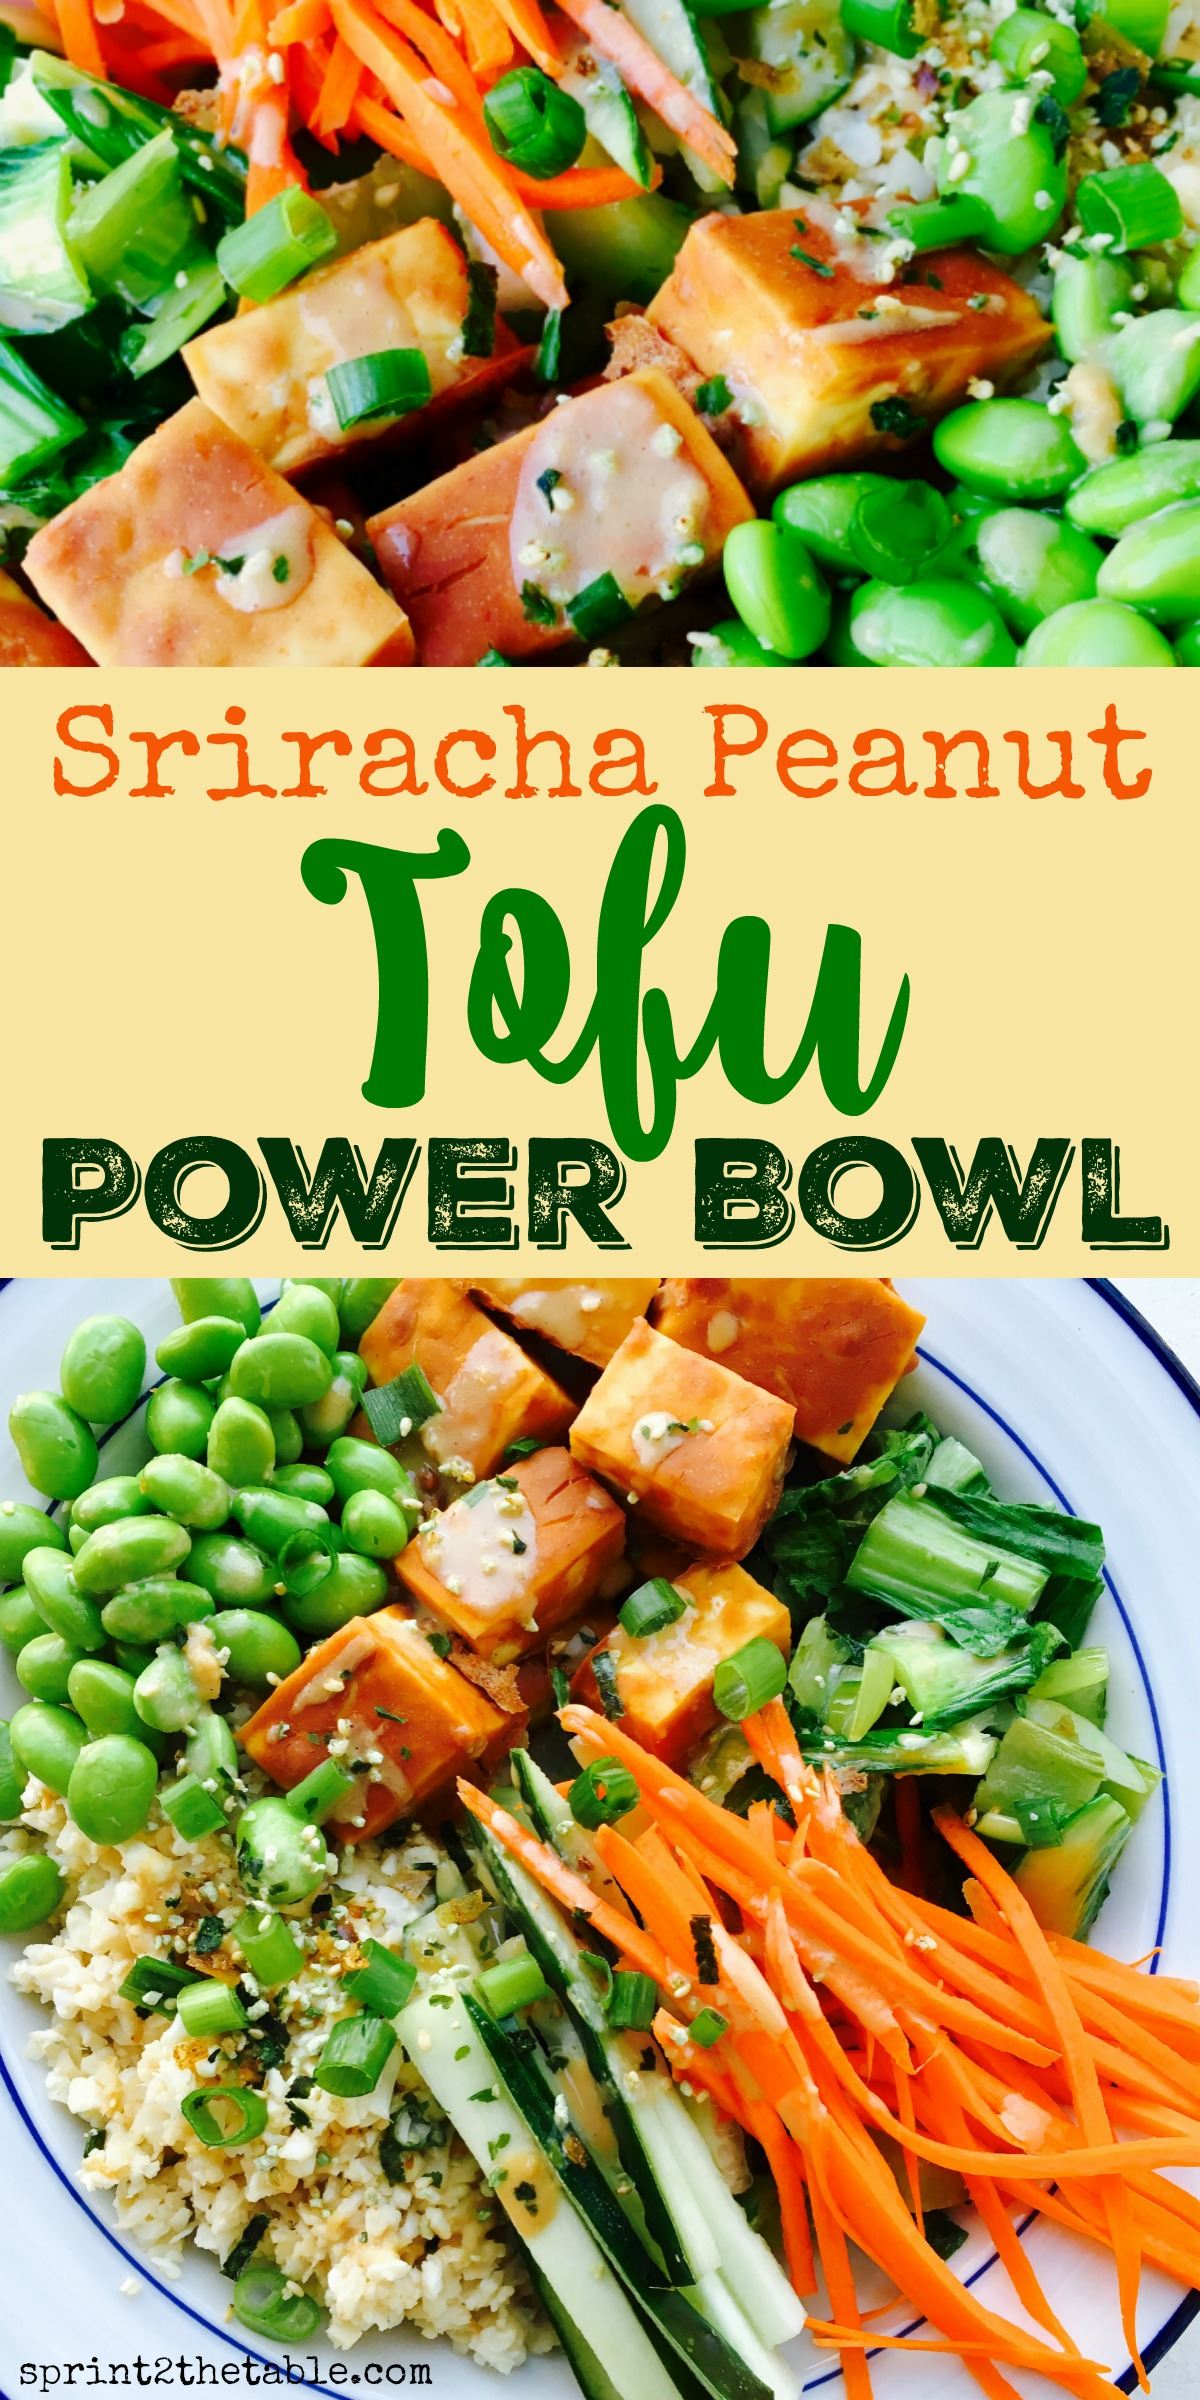 Get the recipe for this delicious and healthy Sriracha Peanut Power Bowl with Ginger Tahini Dressing! Full of nutrients, this dish will give your body a boost and keep you full longer! #vegan #powerbowl #recipe